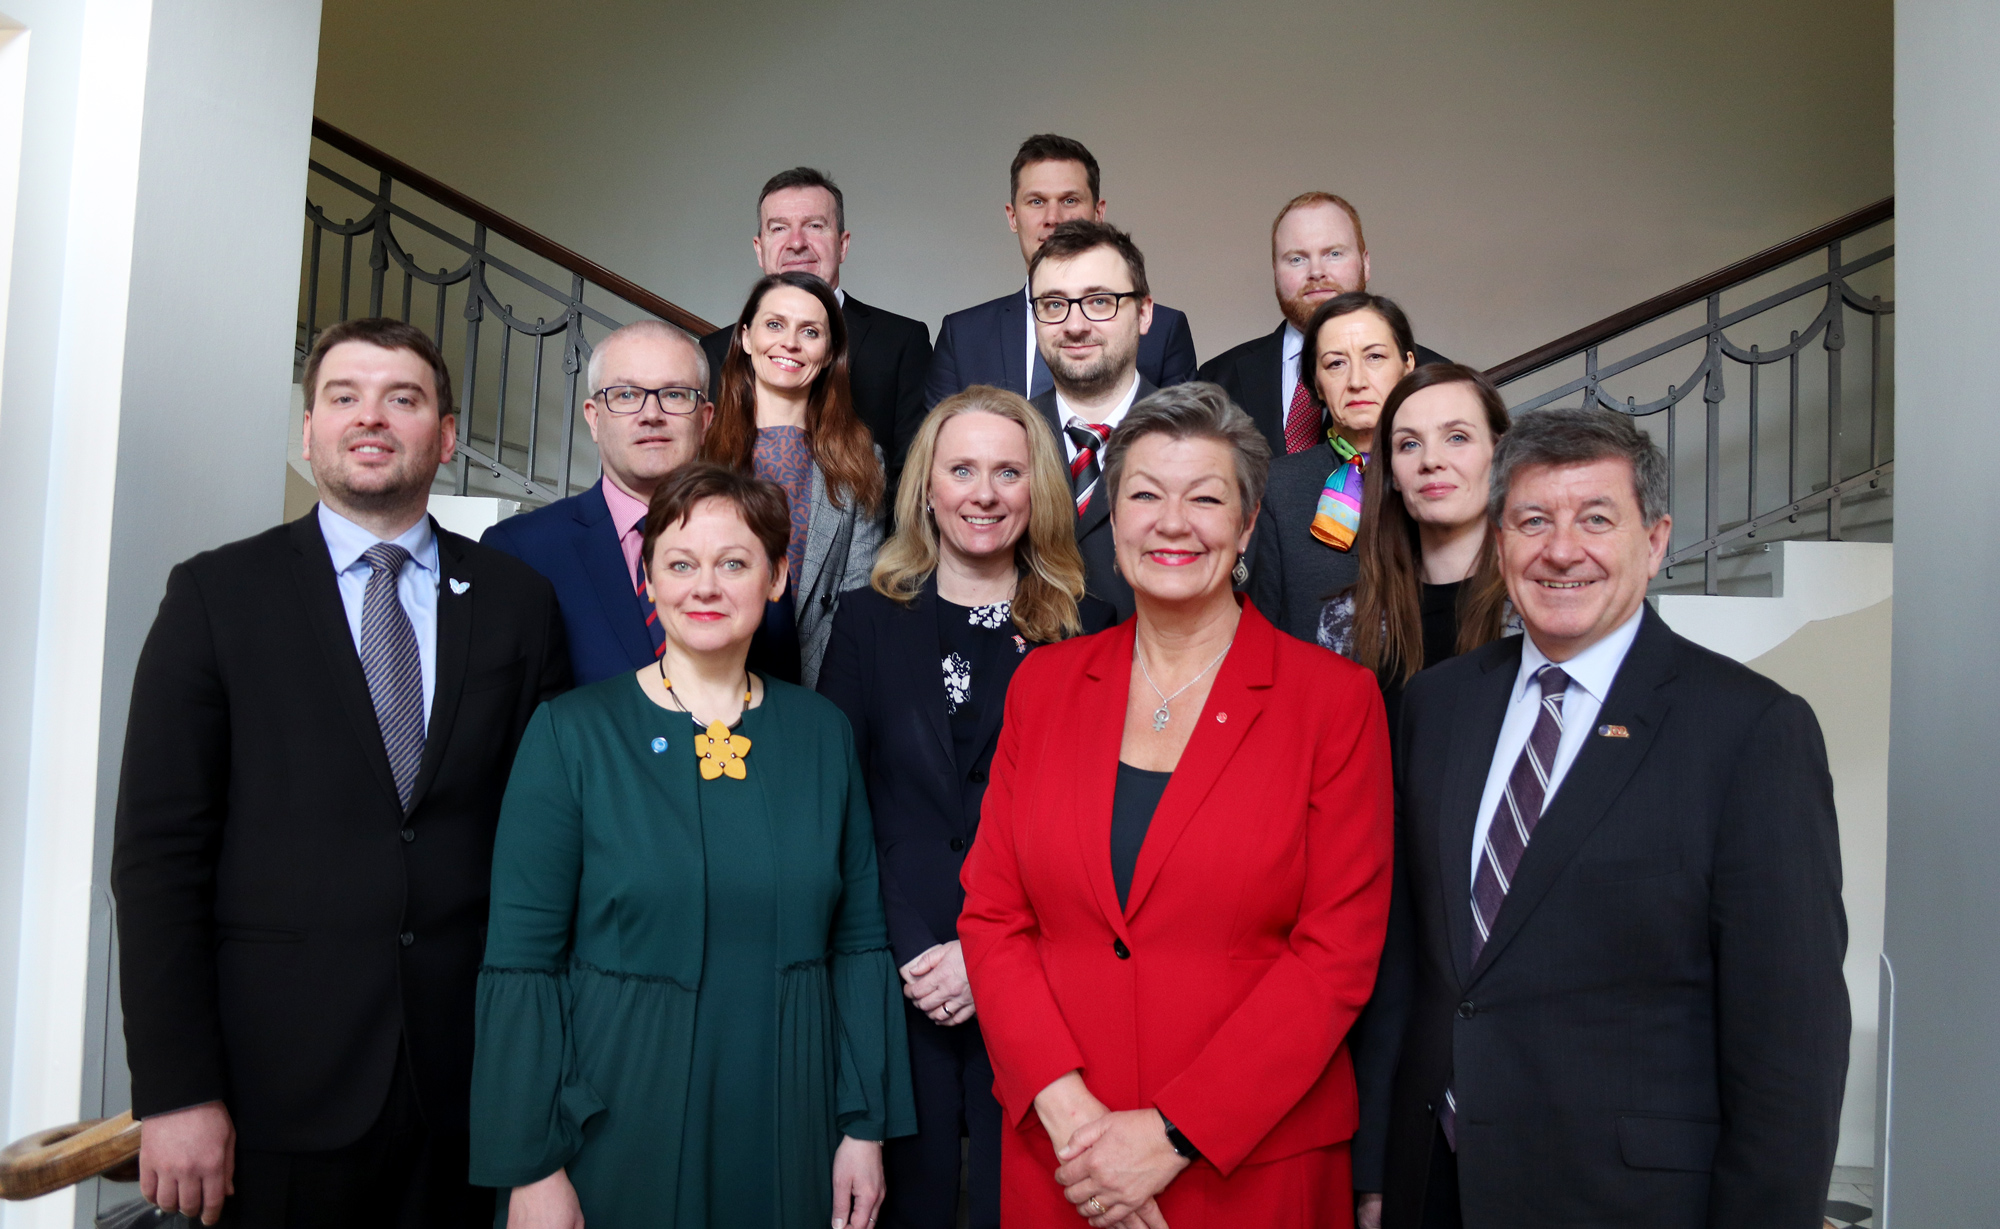 Some of the representatives at the Reykjavik meeting.